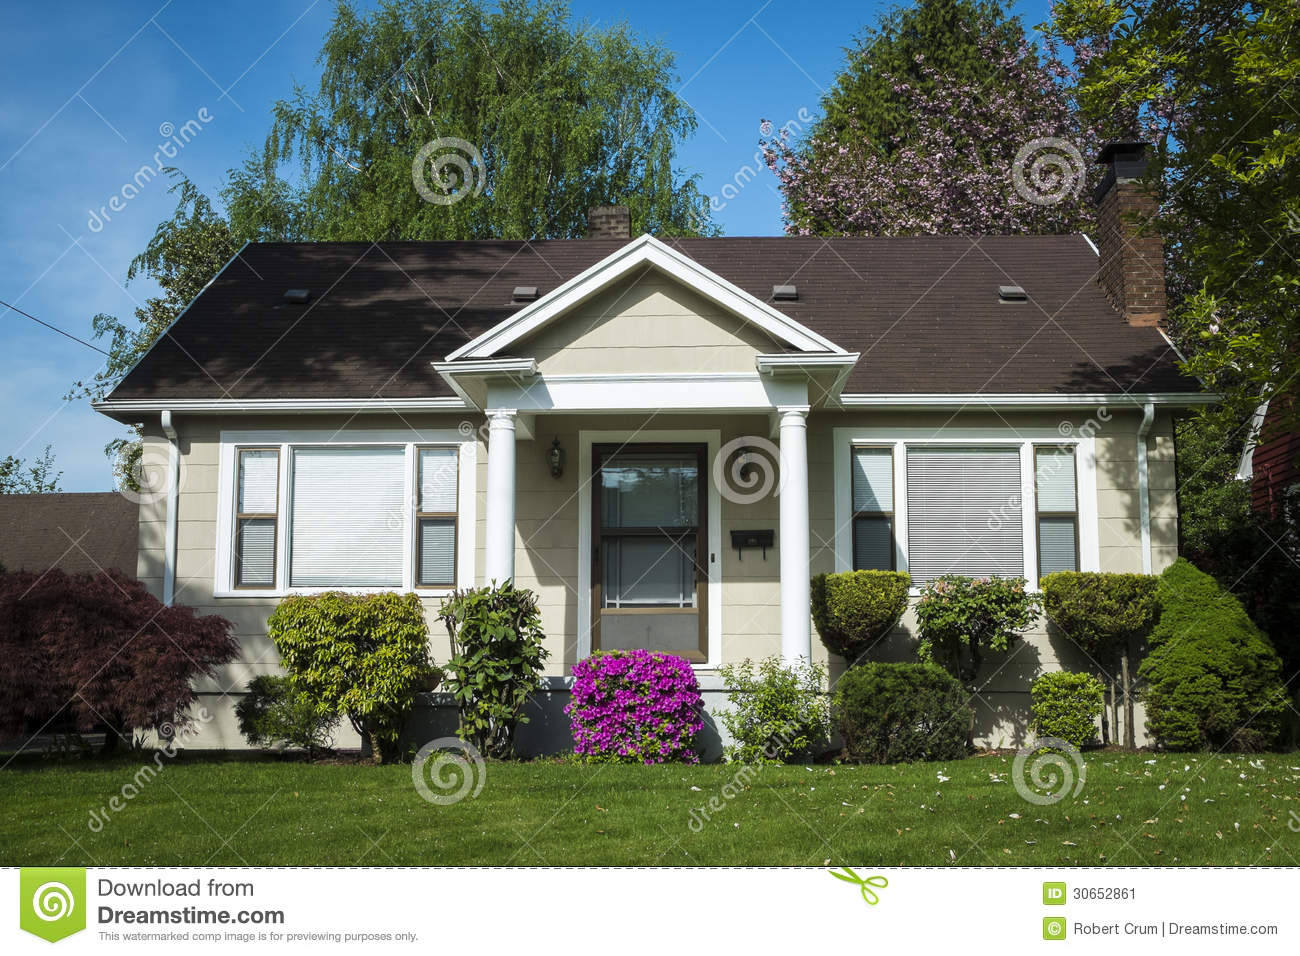 American craftsman house stock image image 30652861 for American craftsman homes